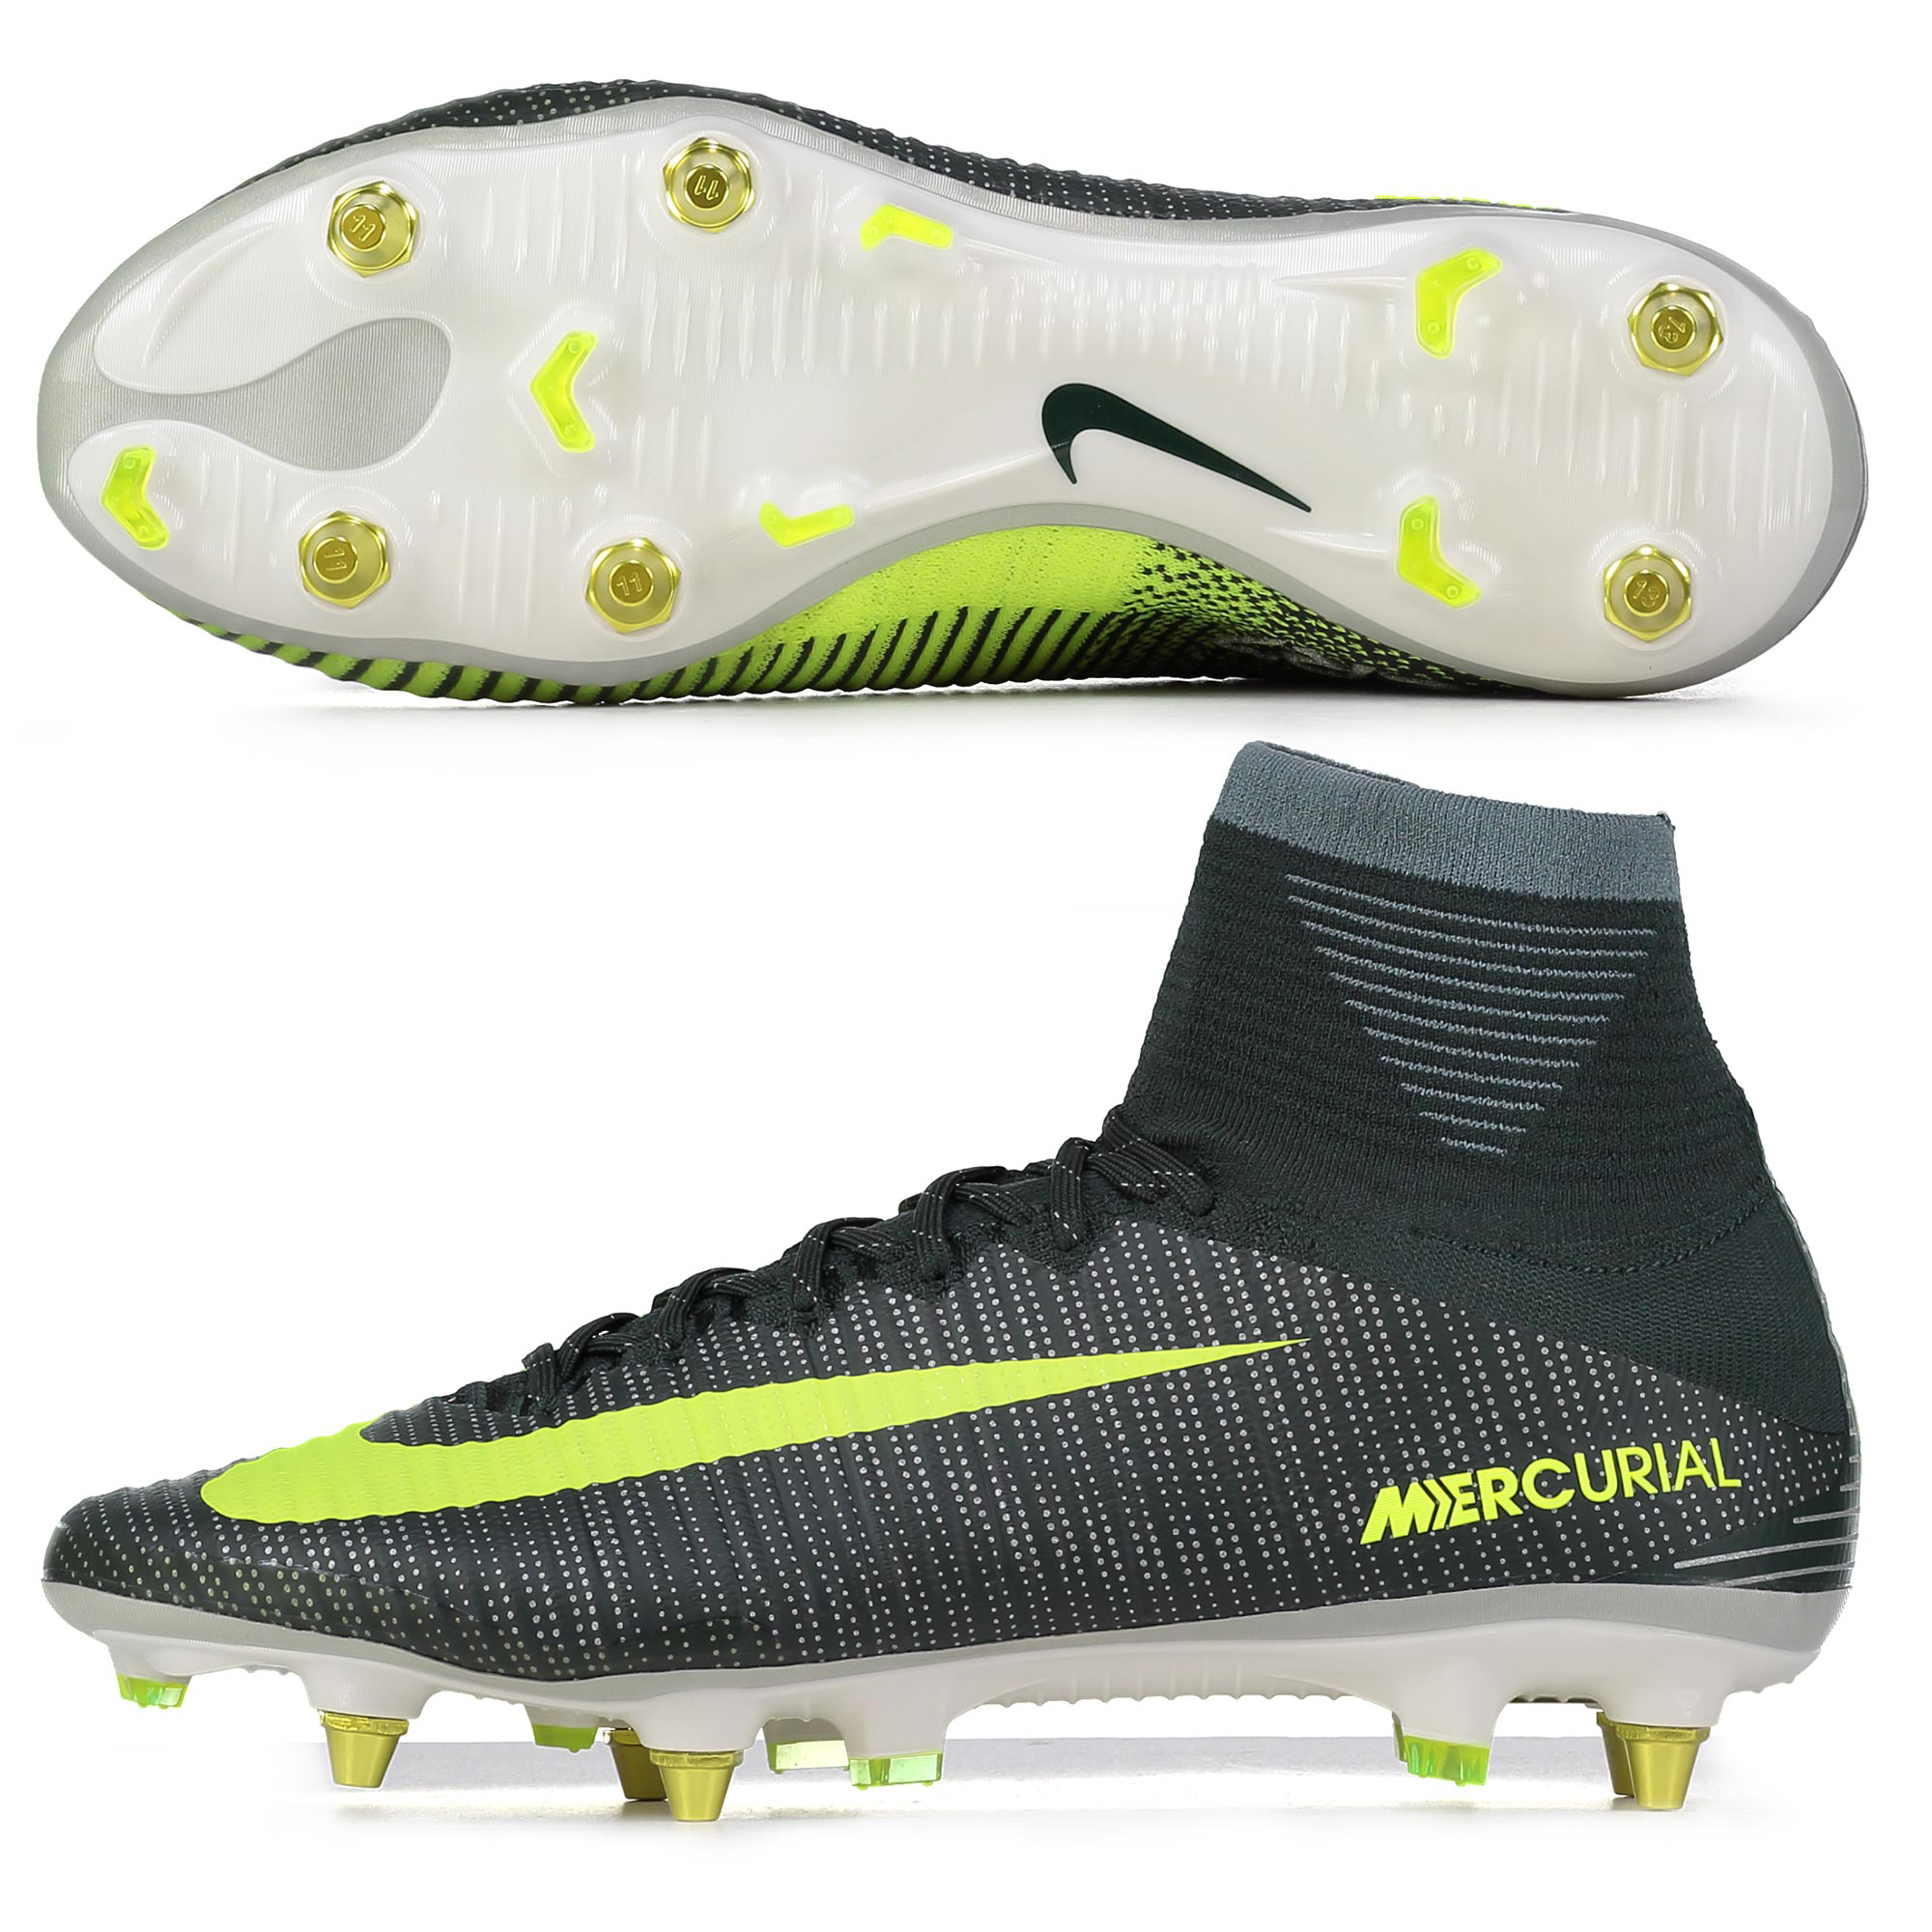 a7bac5eff3d Nike Mercurial Superfly V CR7 Dynamic Fit SG-PRO Soft-Ground Football Boot  Image